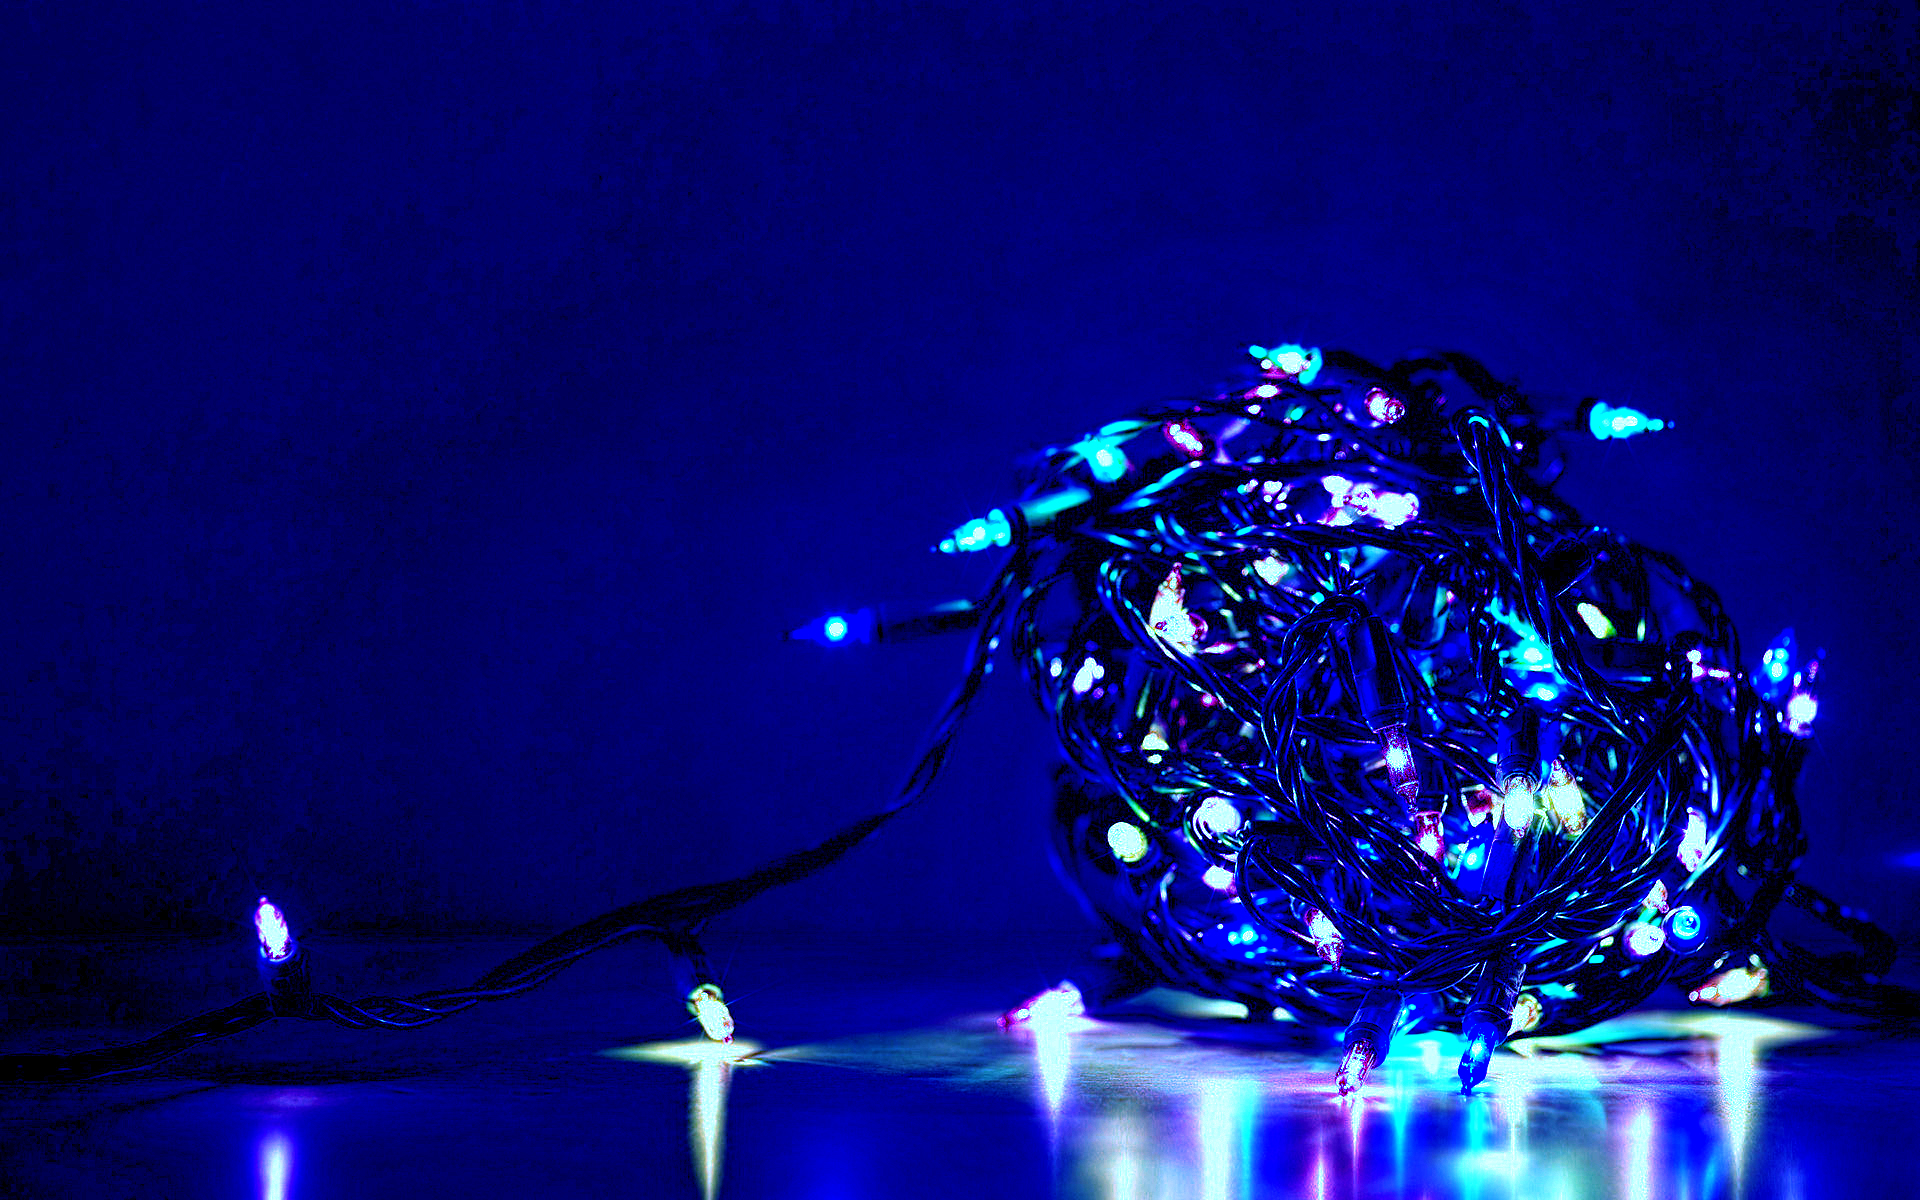 blue ball of lights